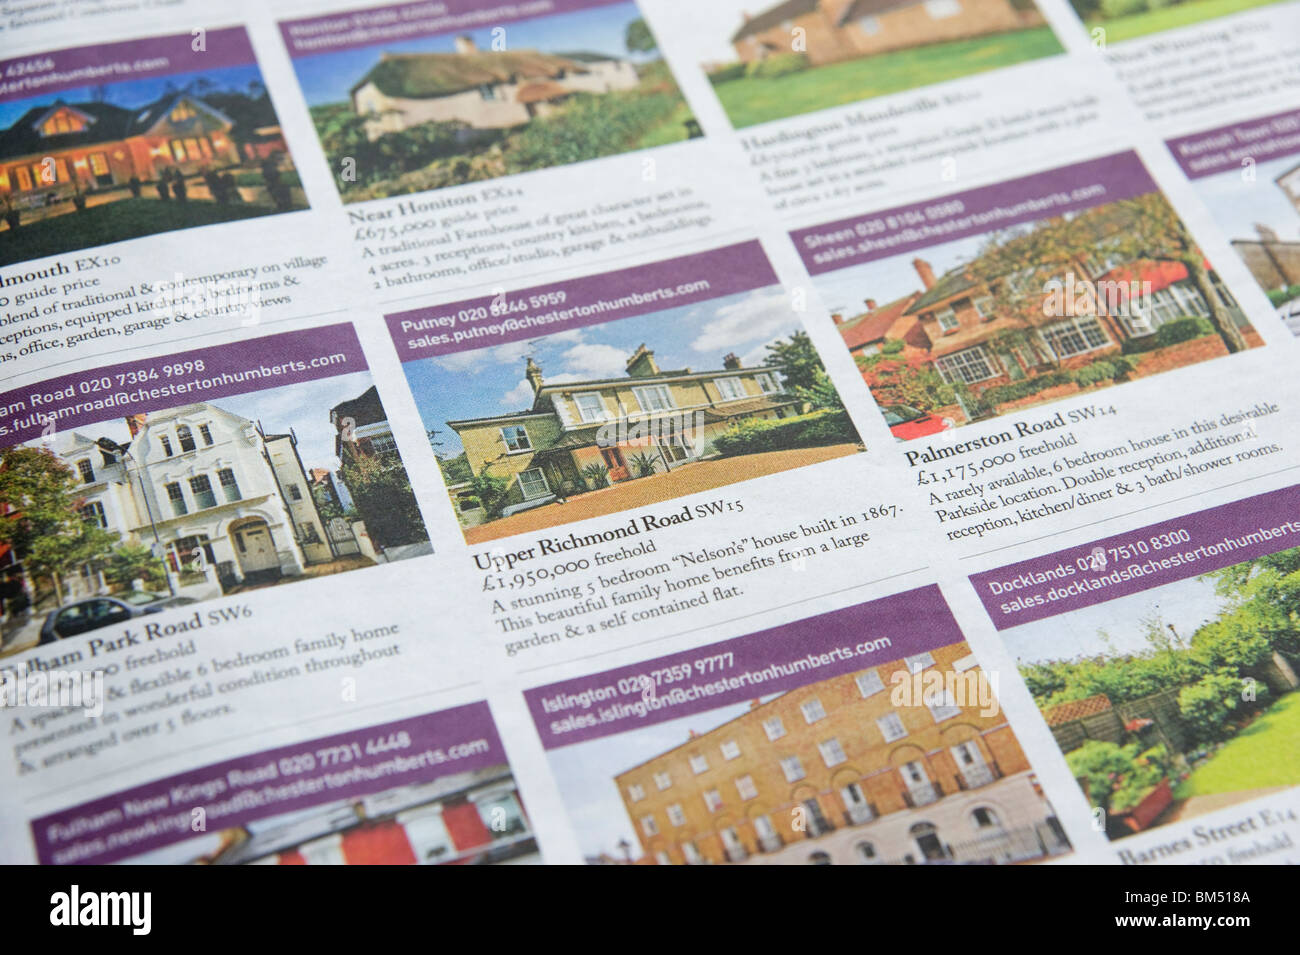 Houses for sale ads in newspaper, London, England, UK - Stock Image